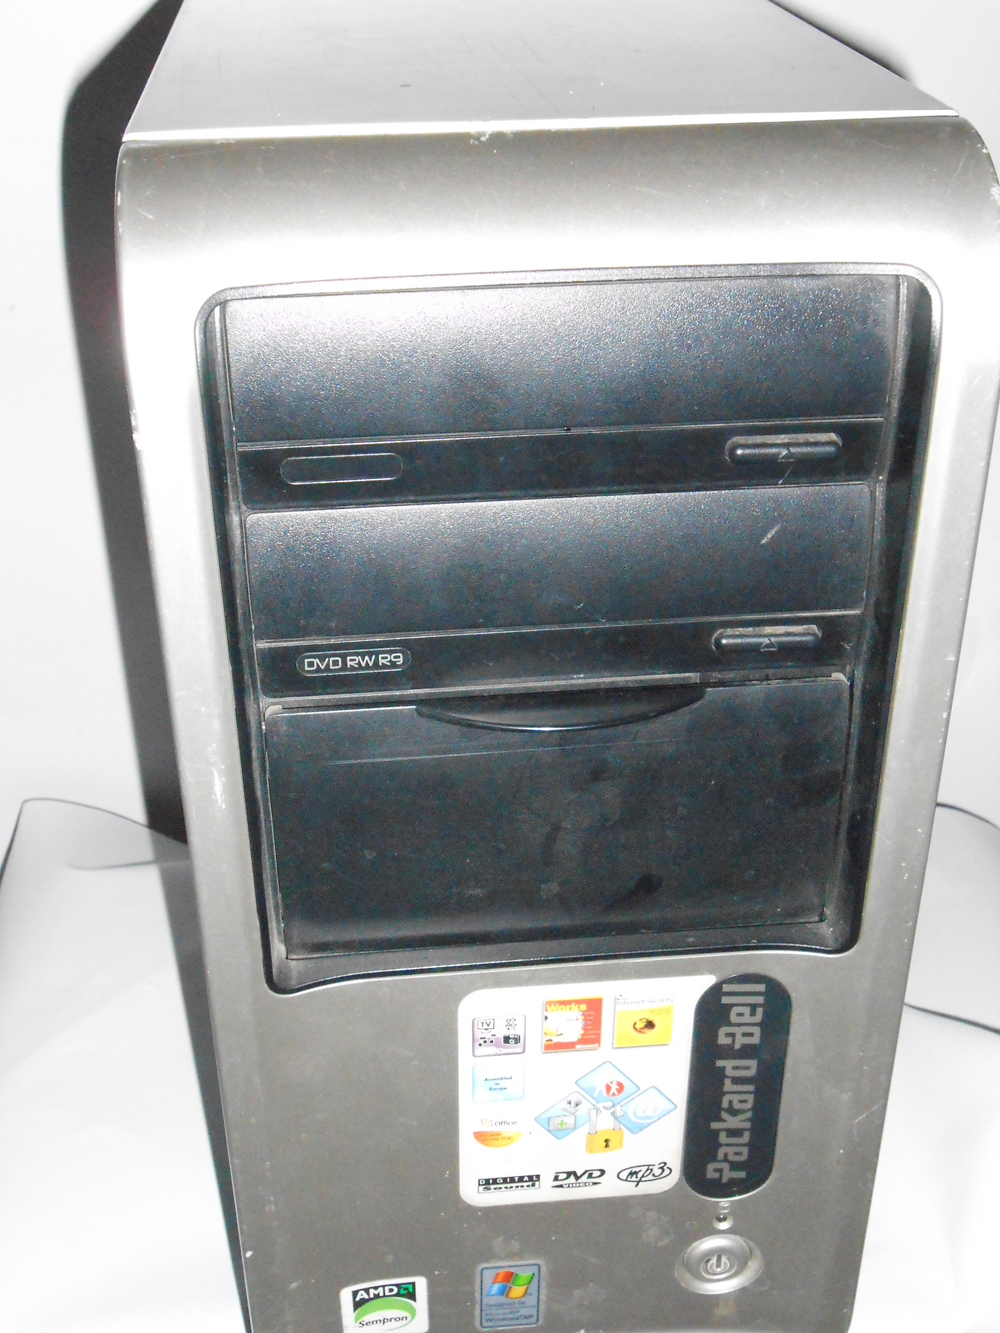 Vendo Desktop Packard Dell UTOW-QUA